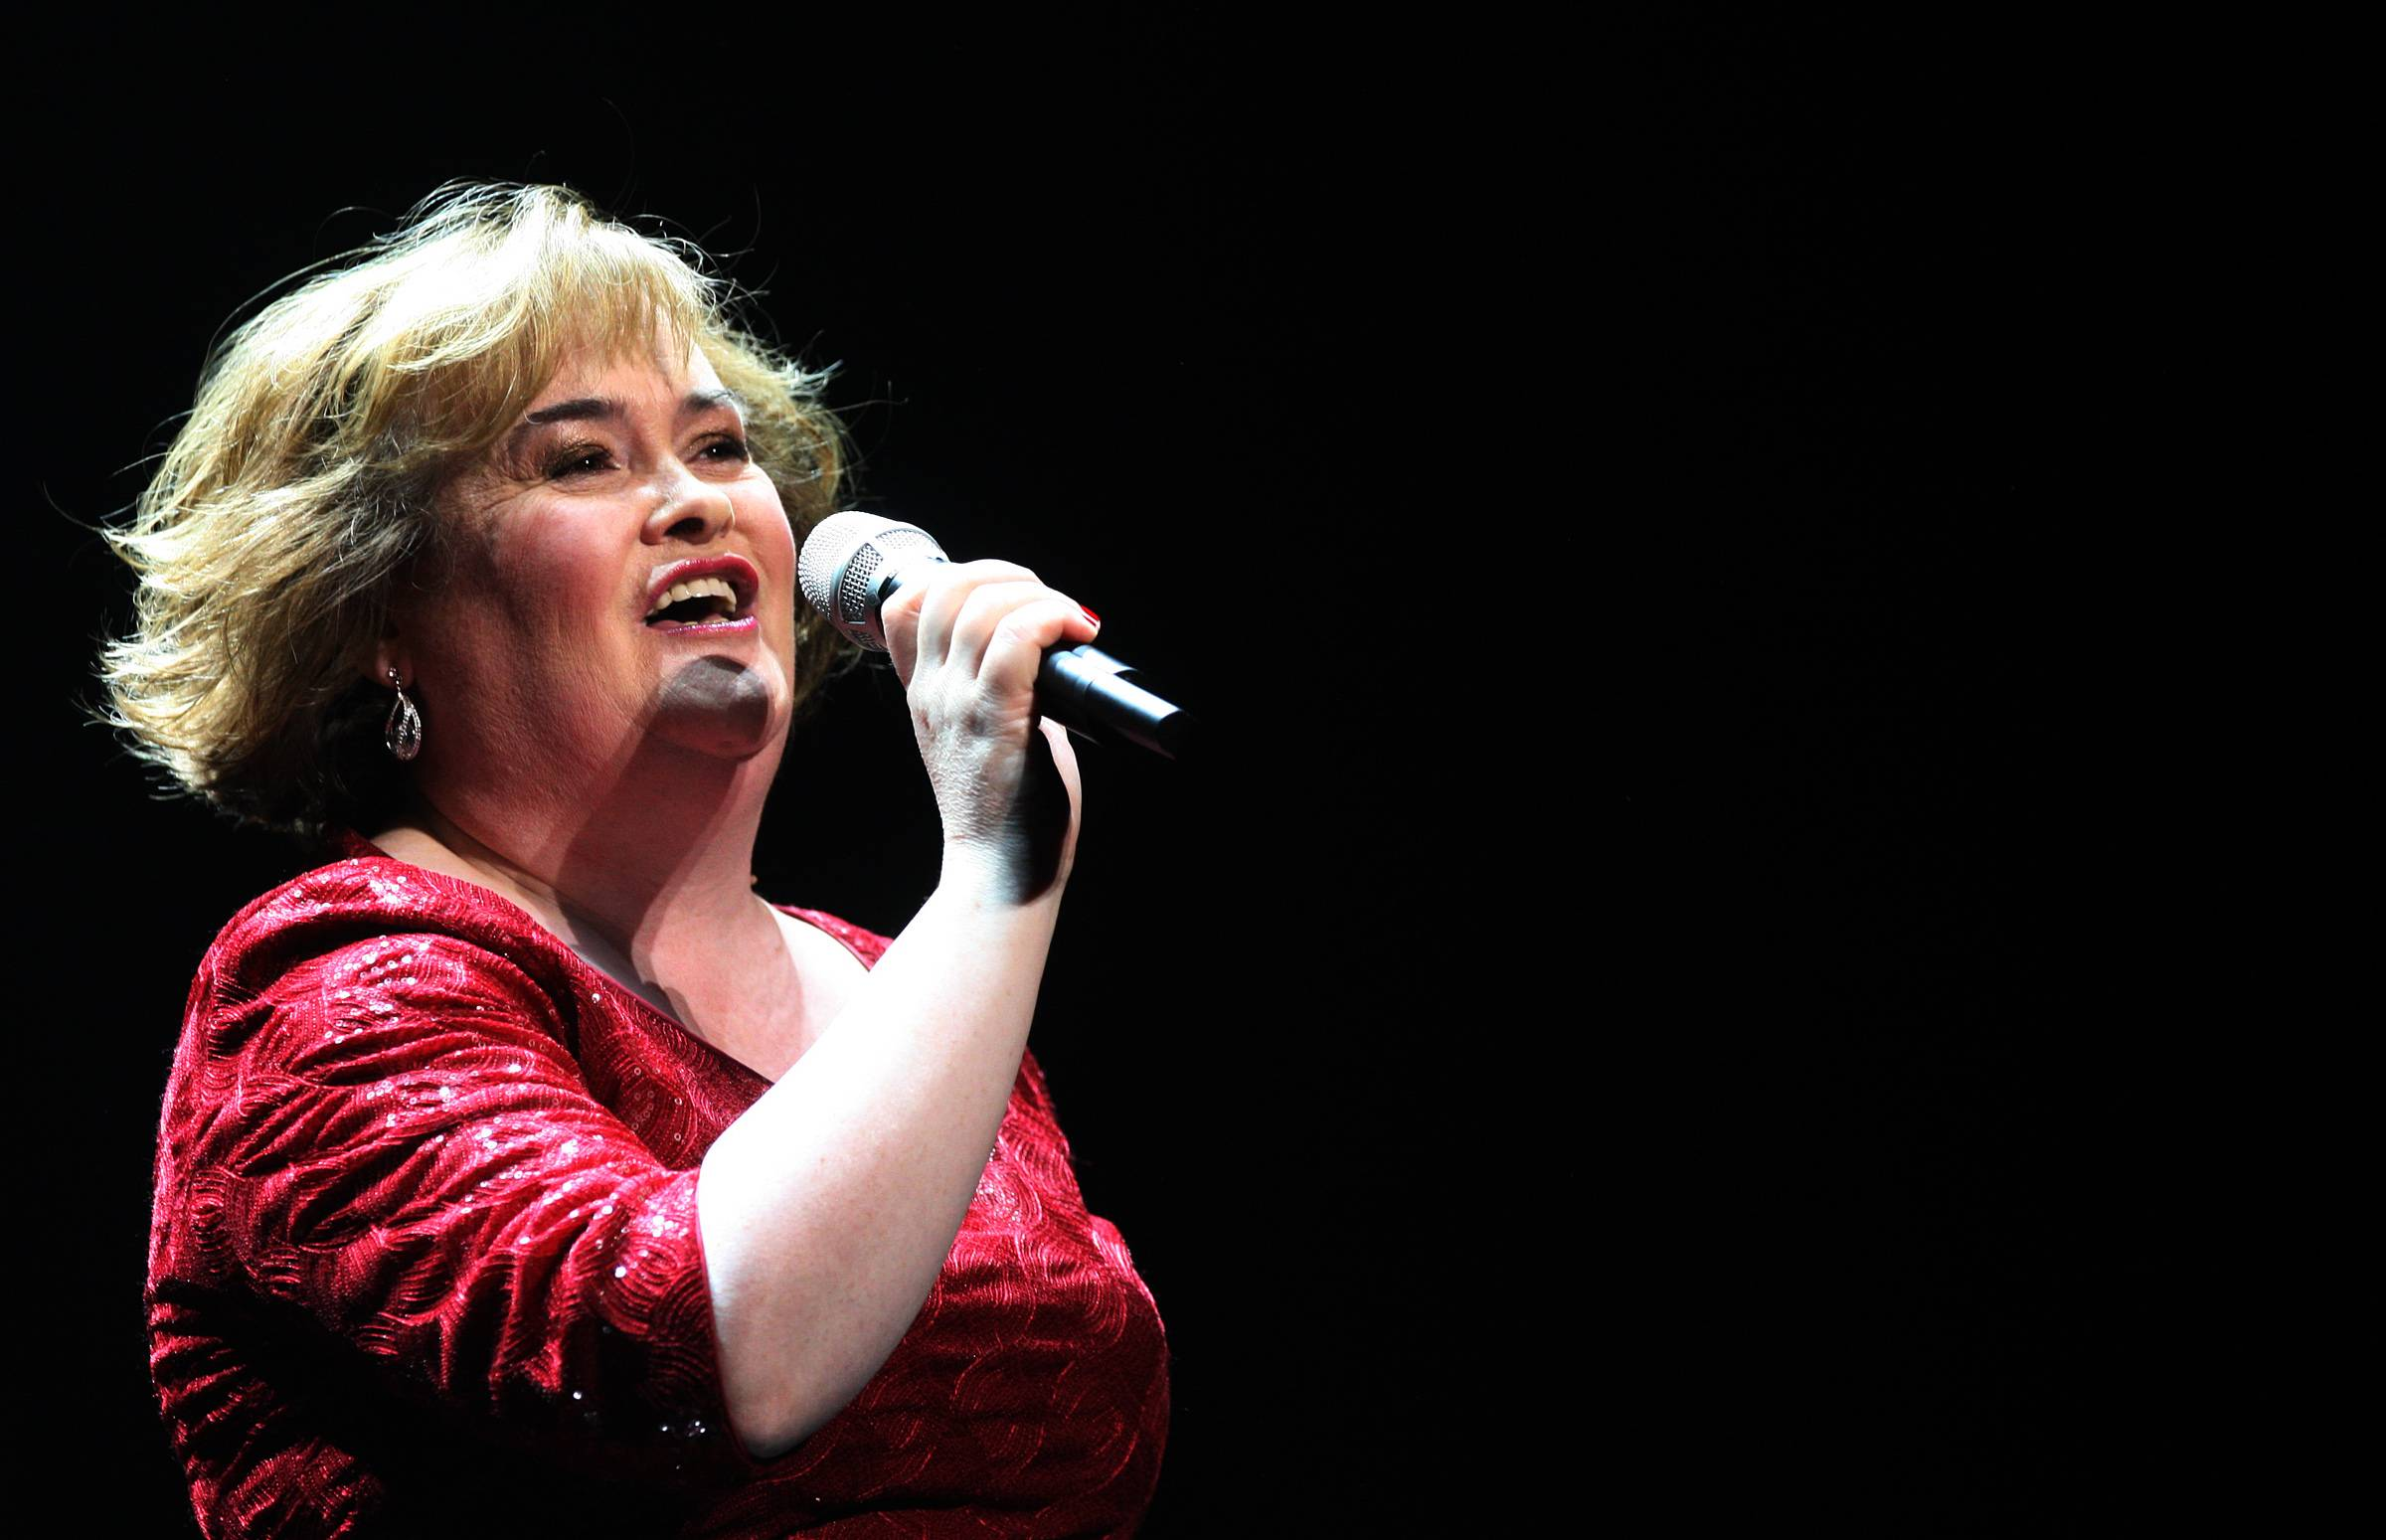 Five years after her musical breakthrough, Susan Boyle says she's feeling confident and comfortable — and ready to launch her first U.S. tour. The 53-year-old will hit the road in October on a 21-date trek.